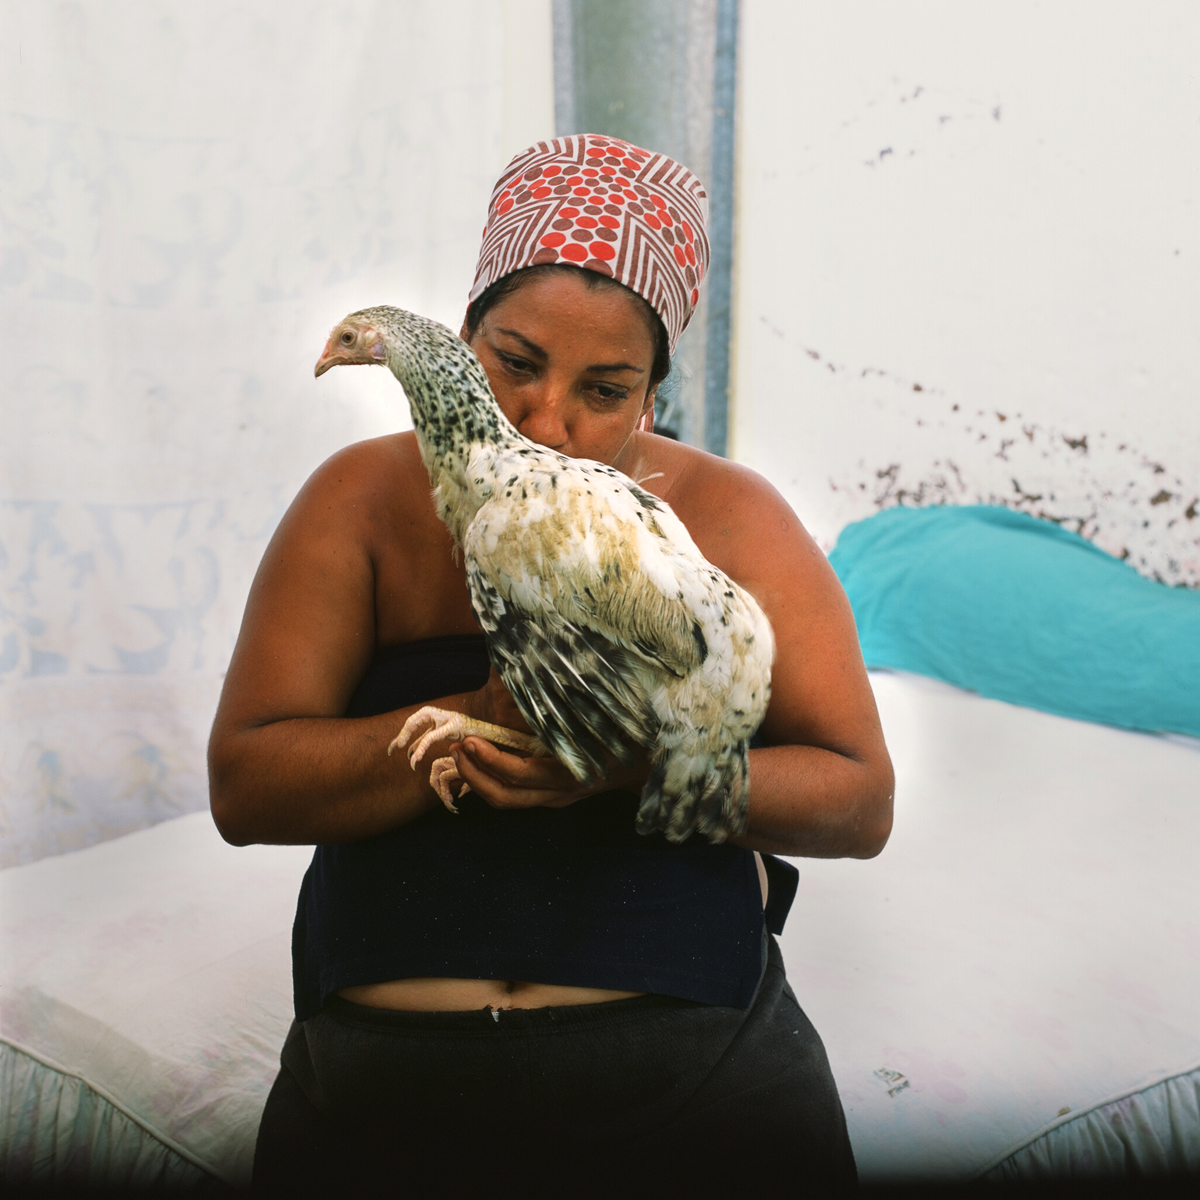 Lelani kisses her chiscken she keeps and raises in her house. It is becoming more popular among some people to have chickens as pets, which they raise for their eggs in order to supplement their diet. Eggs in Cuba can be expensive and and difficult to find at the local markets. Havana, Cuba